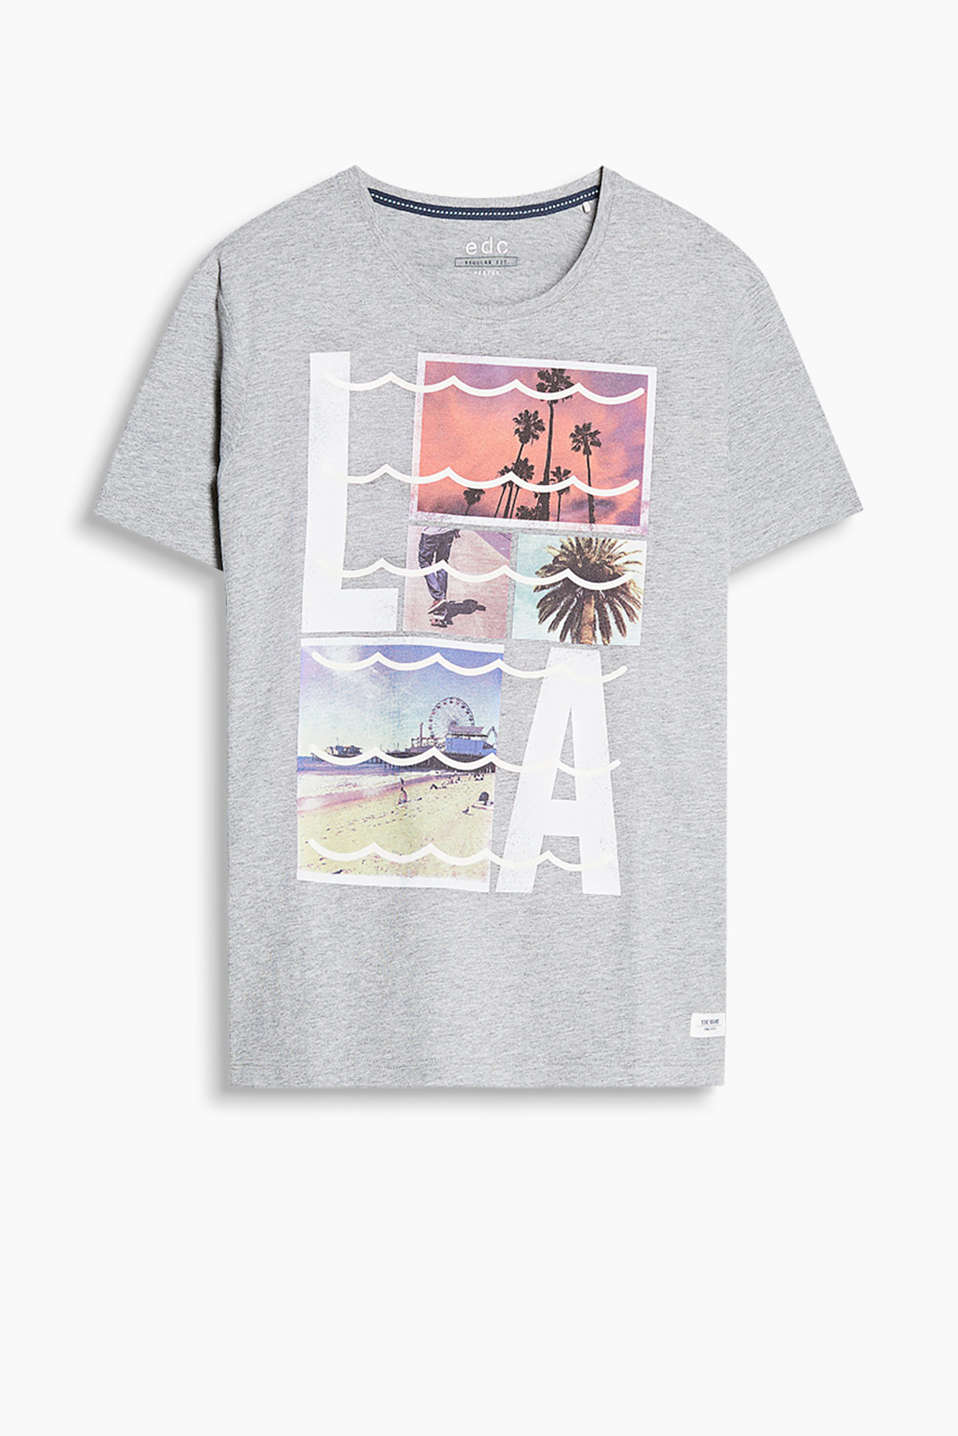 T-shirt in 100% cotton with a retro-style photo print